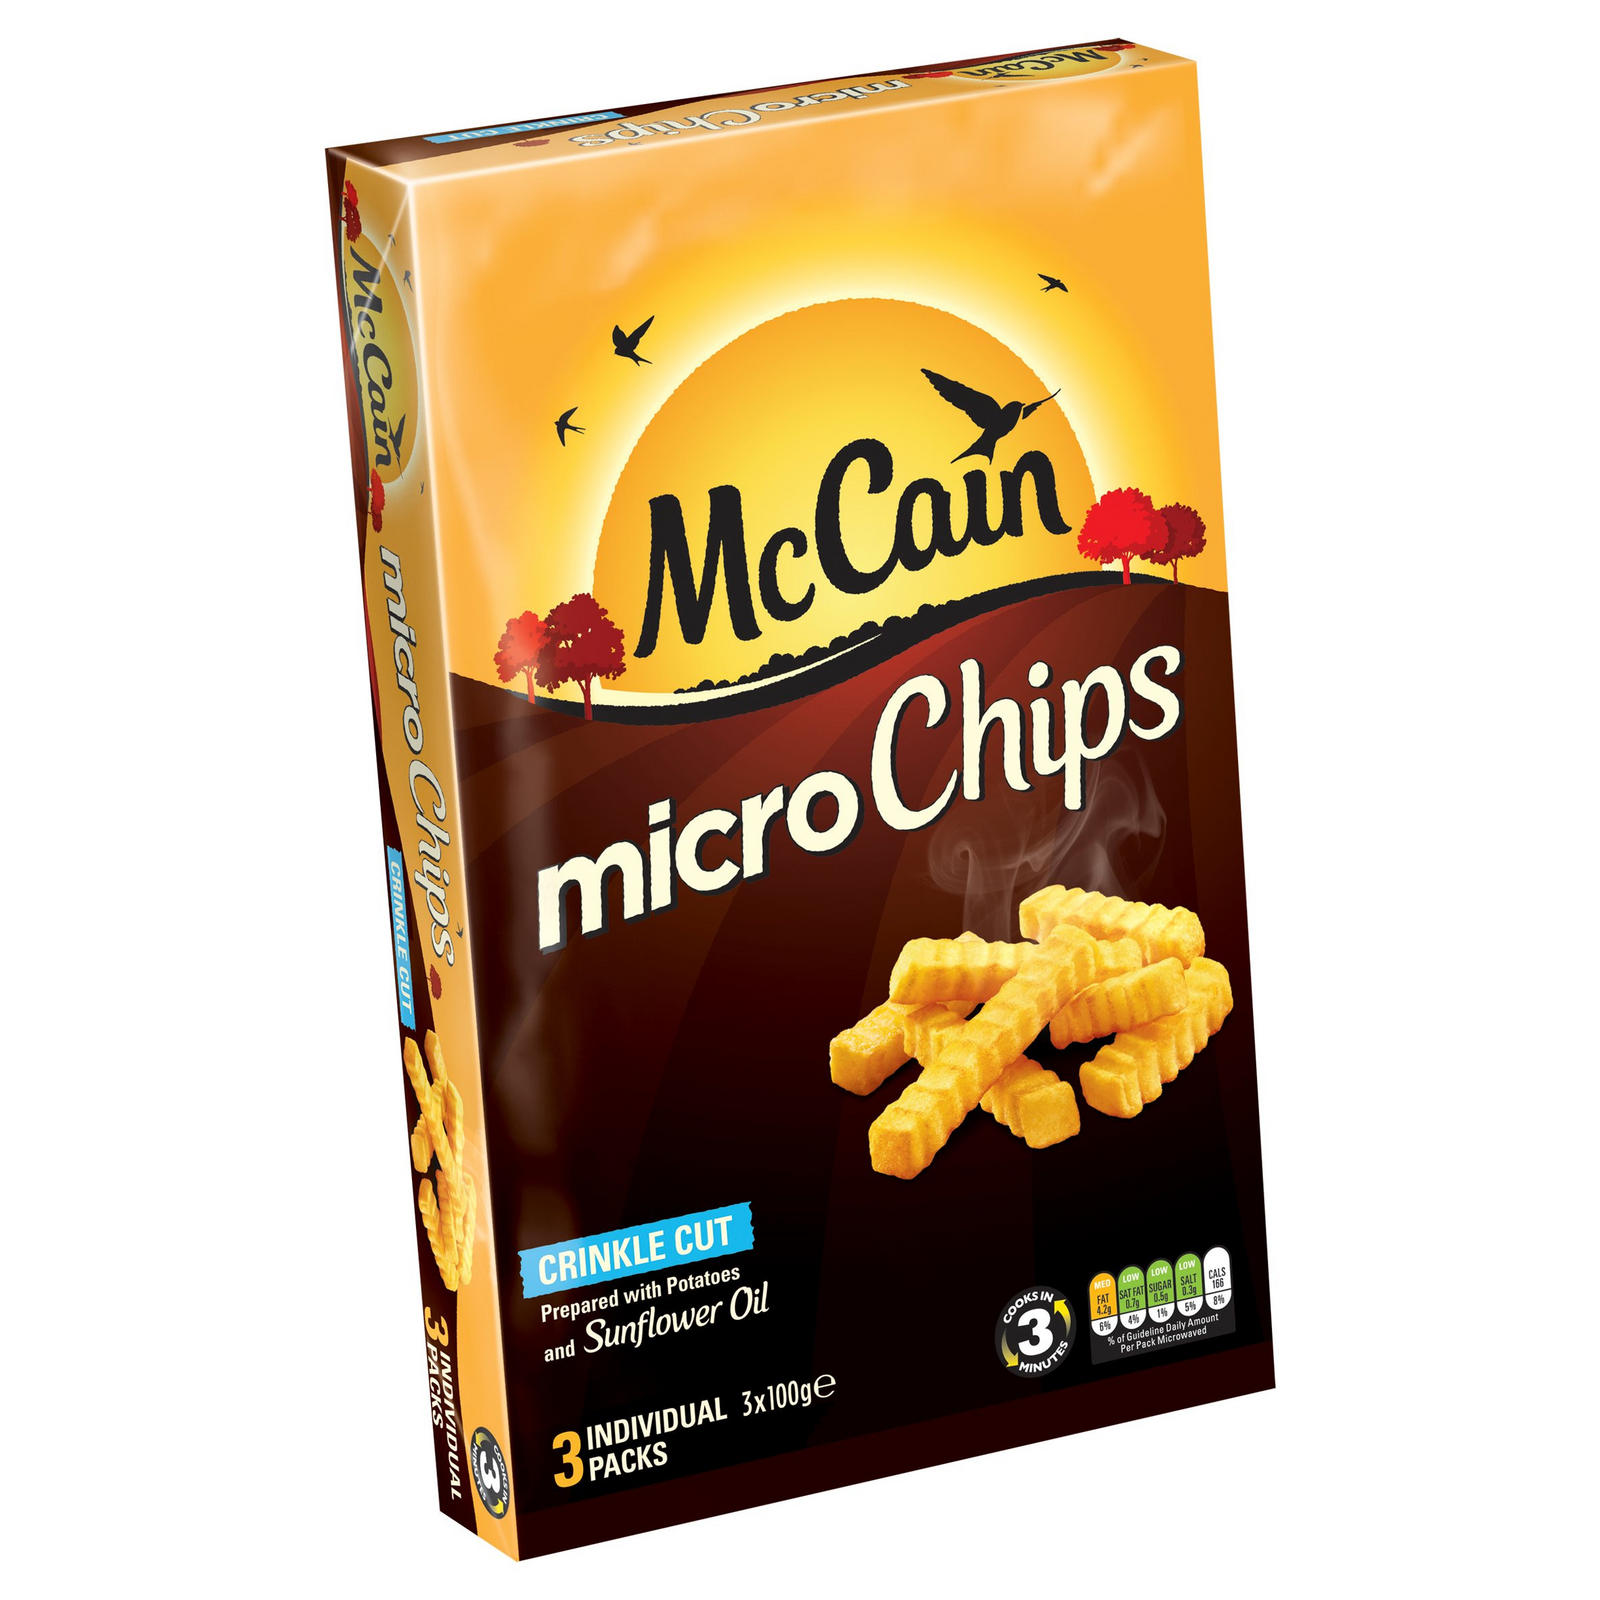 McCain Micro Chips Crinkle Cut 3 x 100g | Chips & Fries | Iceland Foods